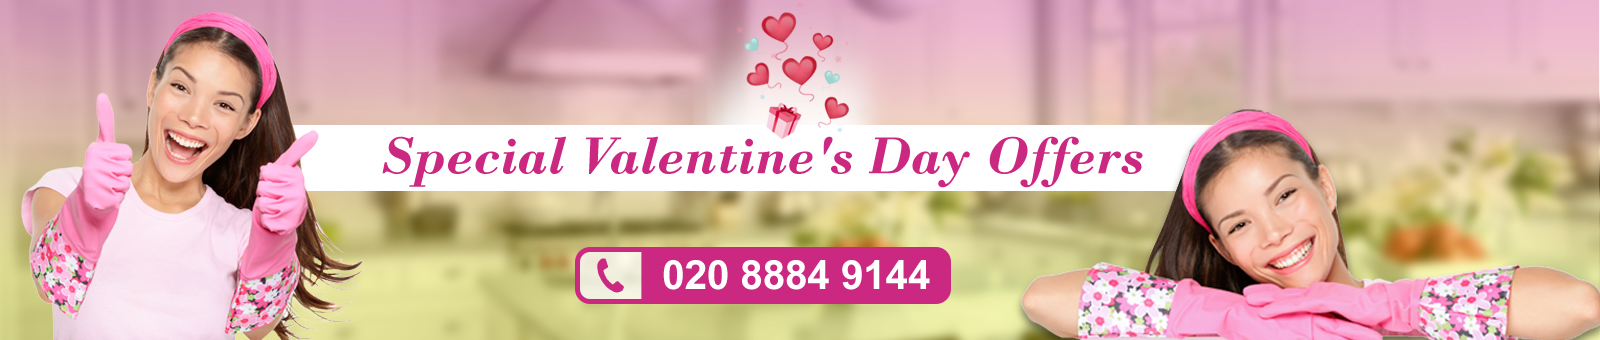 special-valentines-offers